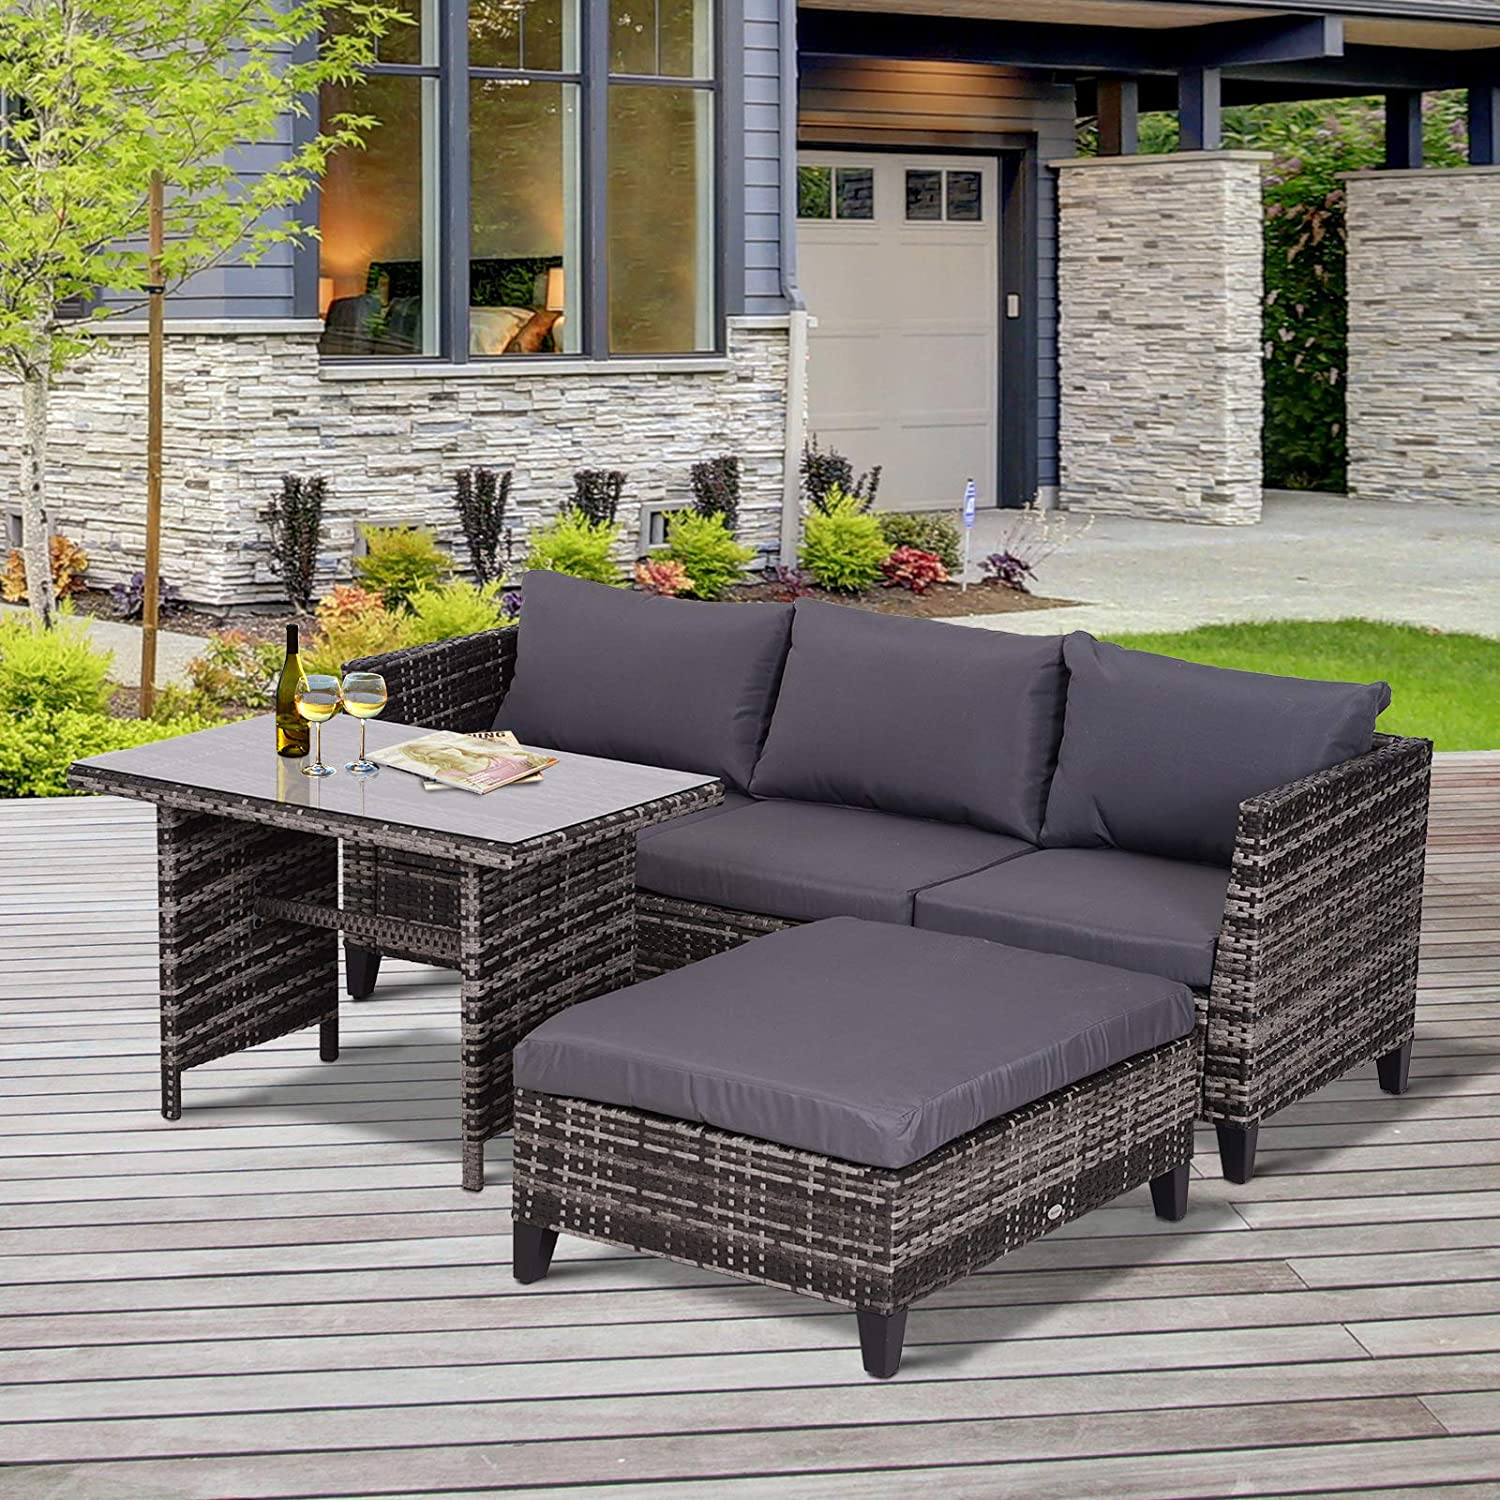 Outsunny 3pcs Garden Rattan Sectional Set Outdoor Chaise Lounge Sofa Wicker Three-Seater Sofa Ottoman /& Coffee Table w//Cushion Grey